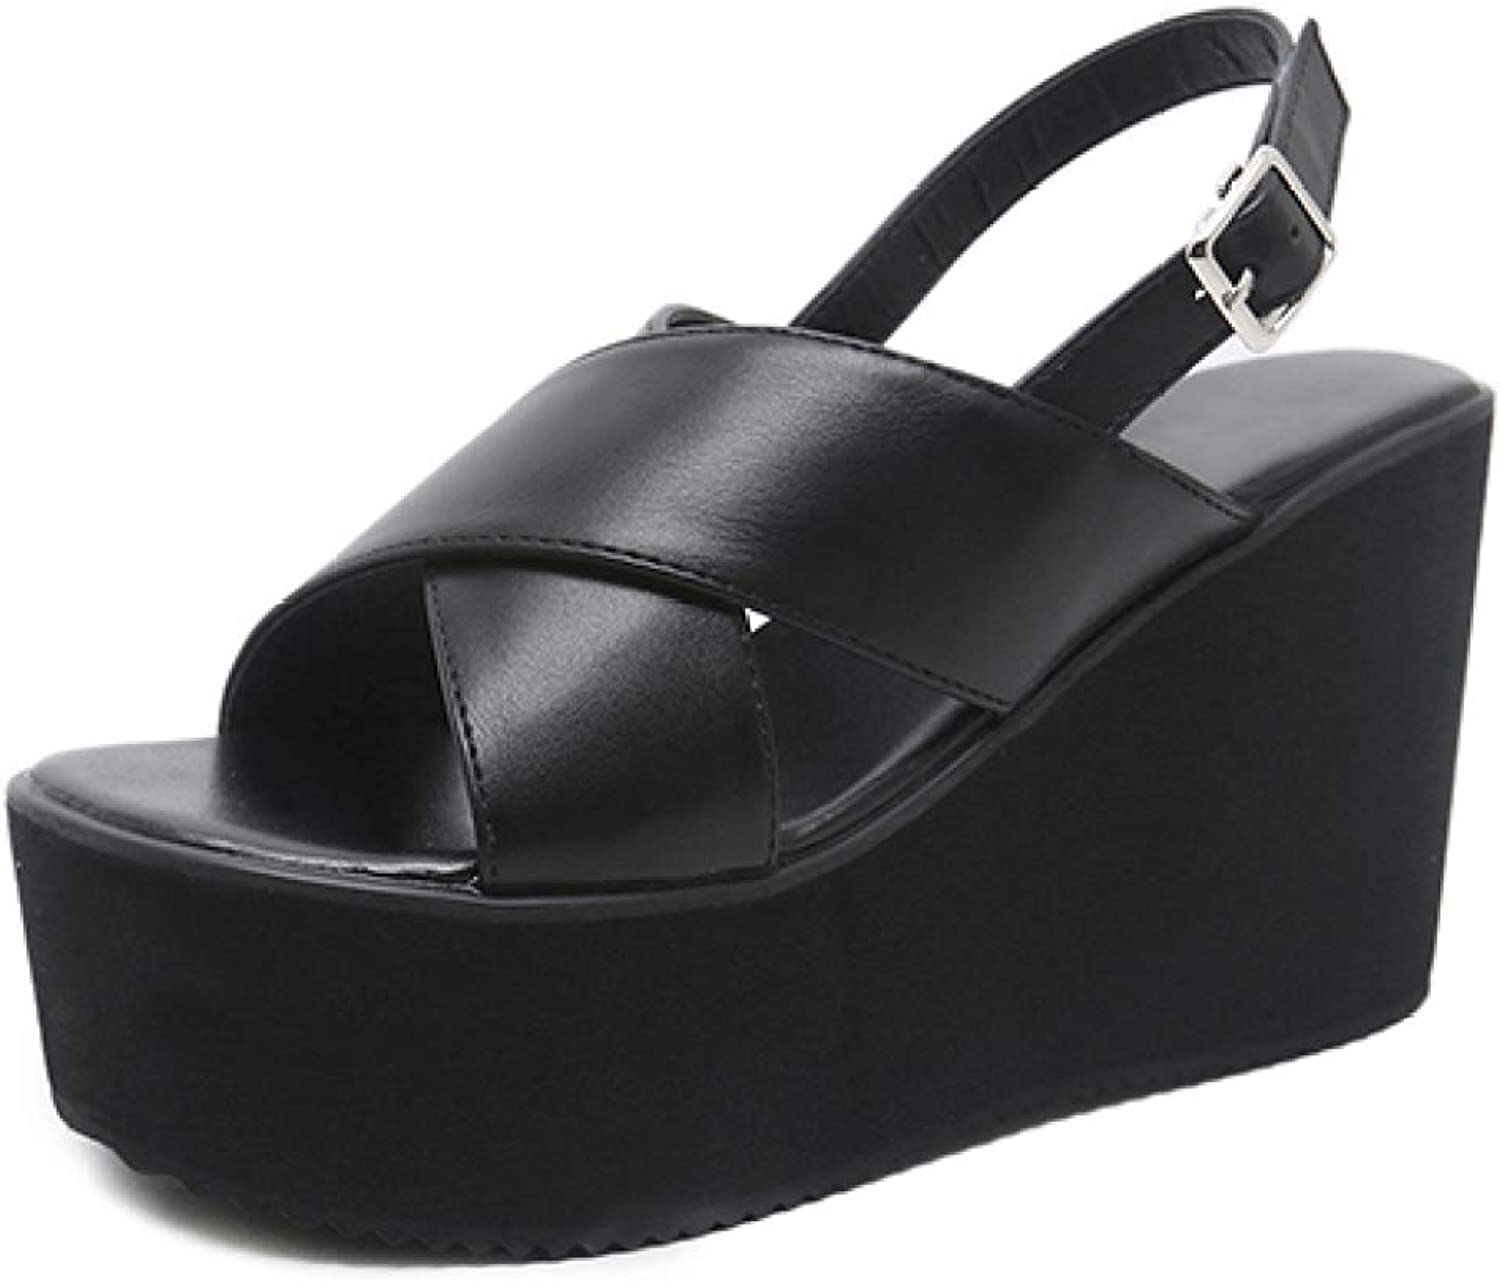 T-JULY Platform Wedges Sandals Fashion High Heels Buckle Black Ladies Casual Leather shoes Women Leisure Summer